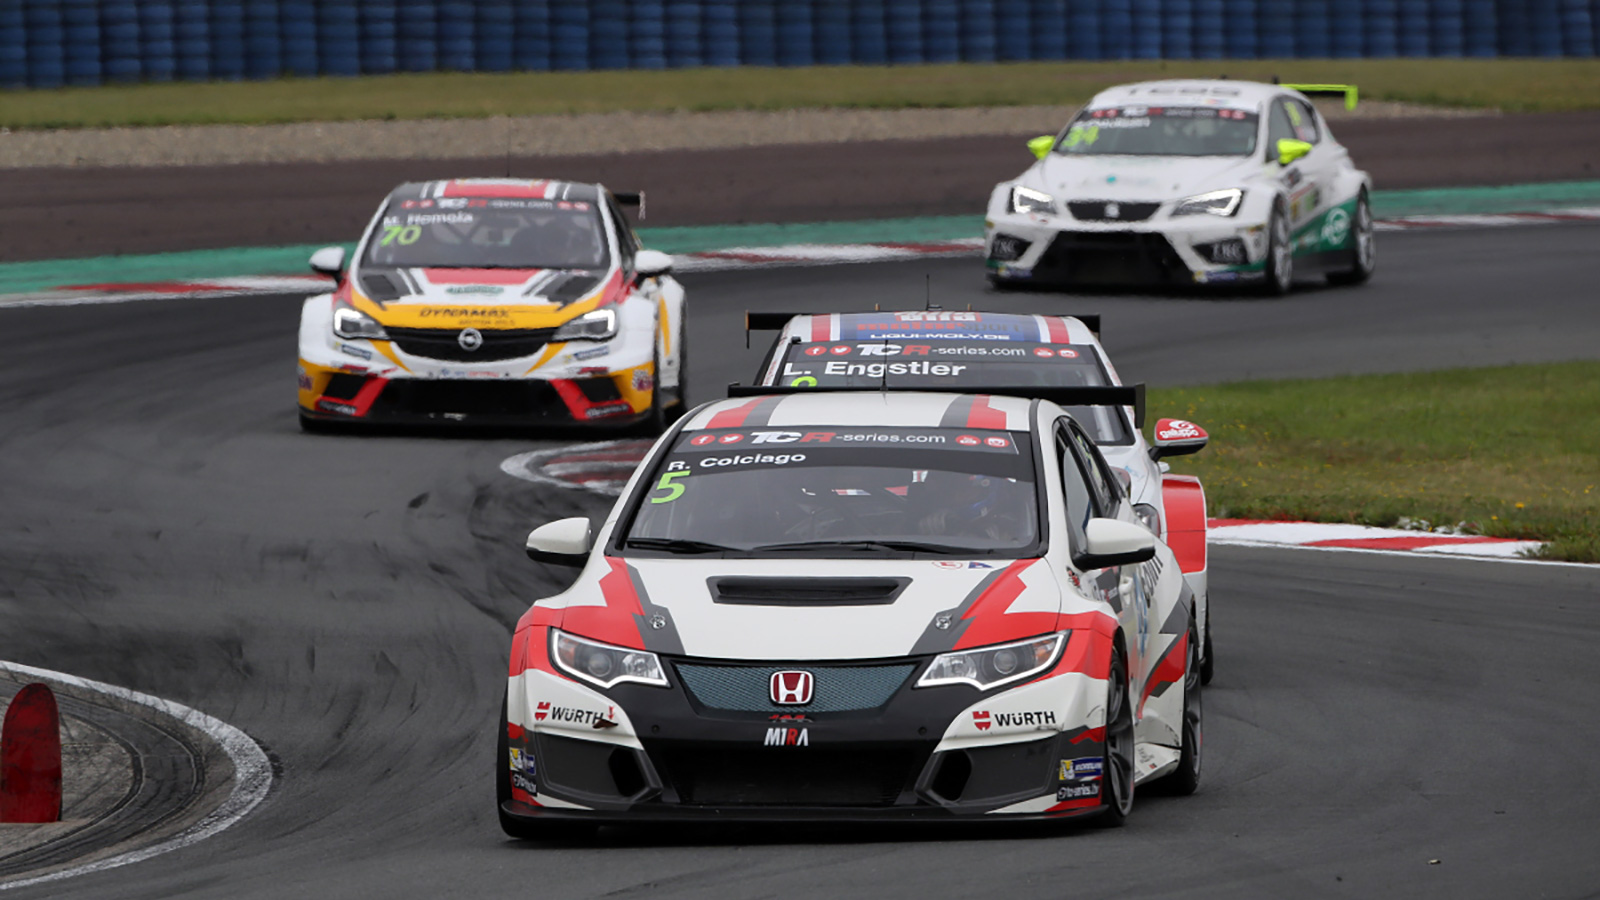 New championship set to commence at squad's 'home' track.